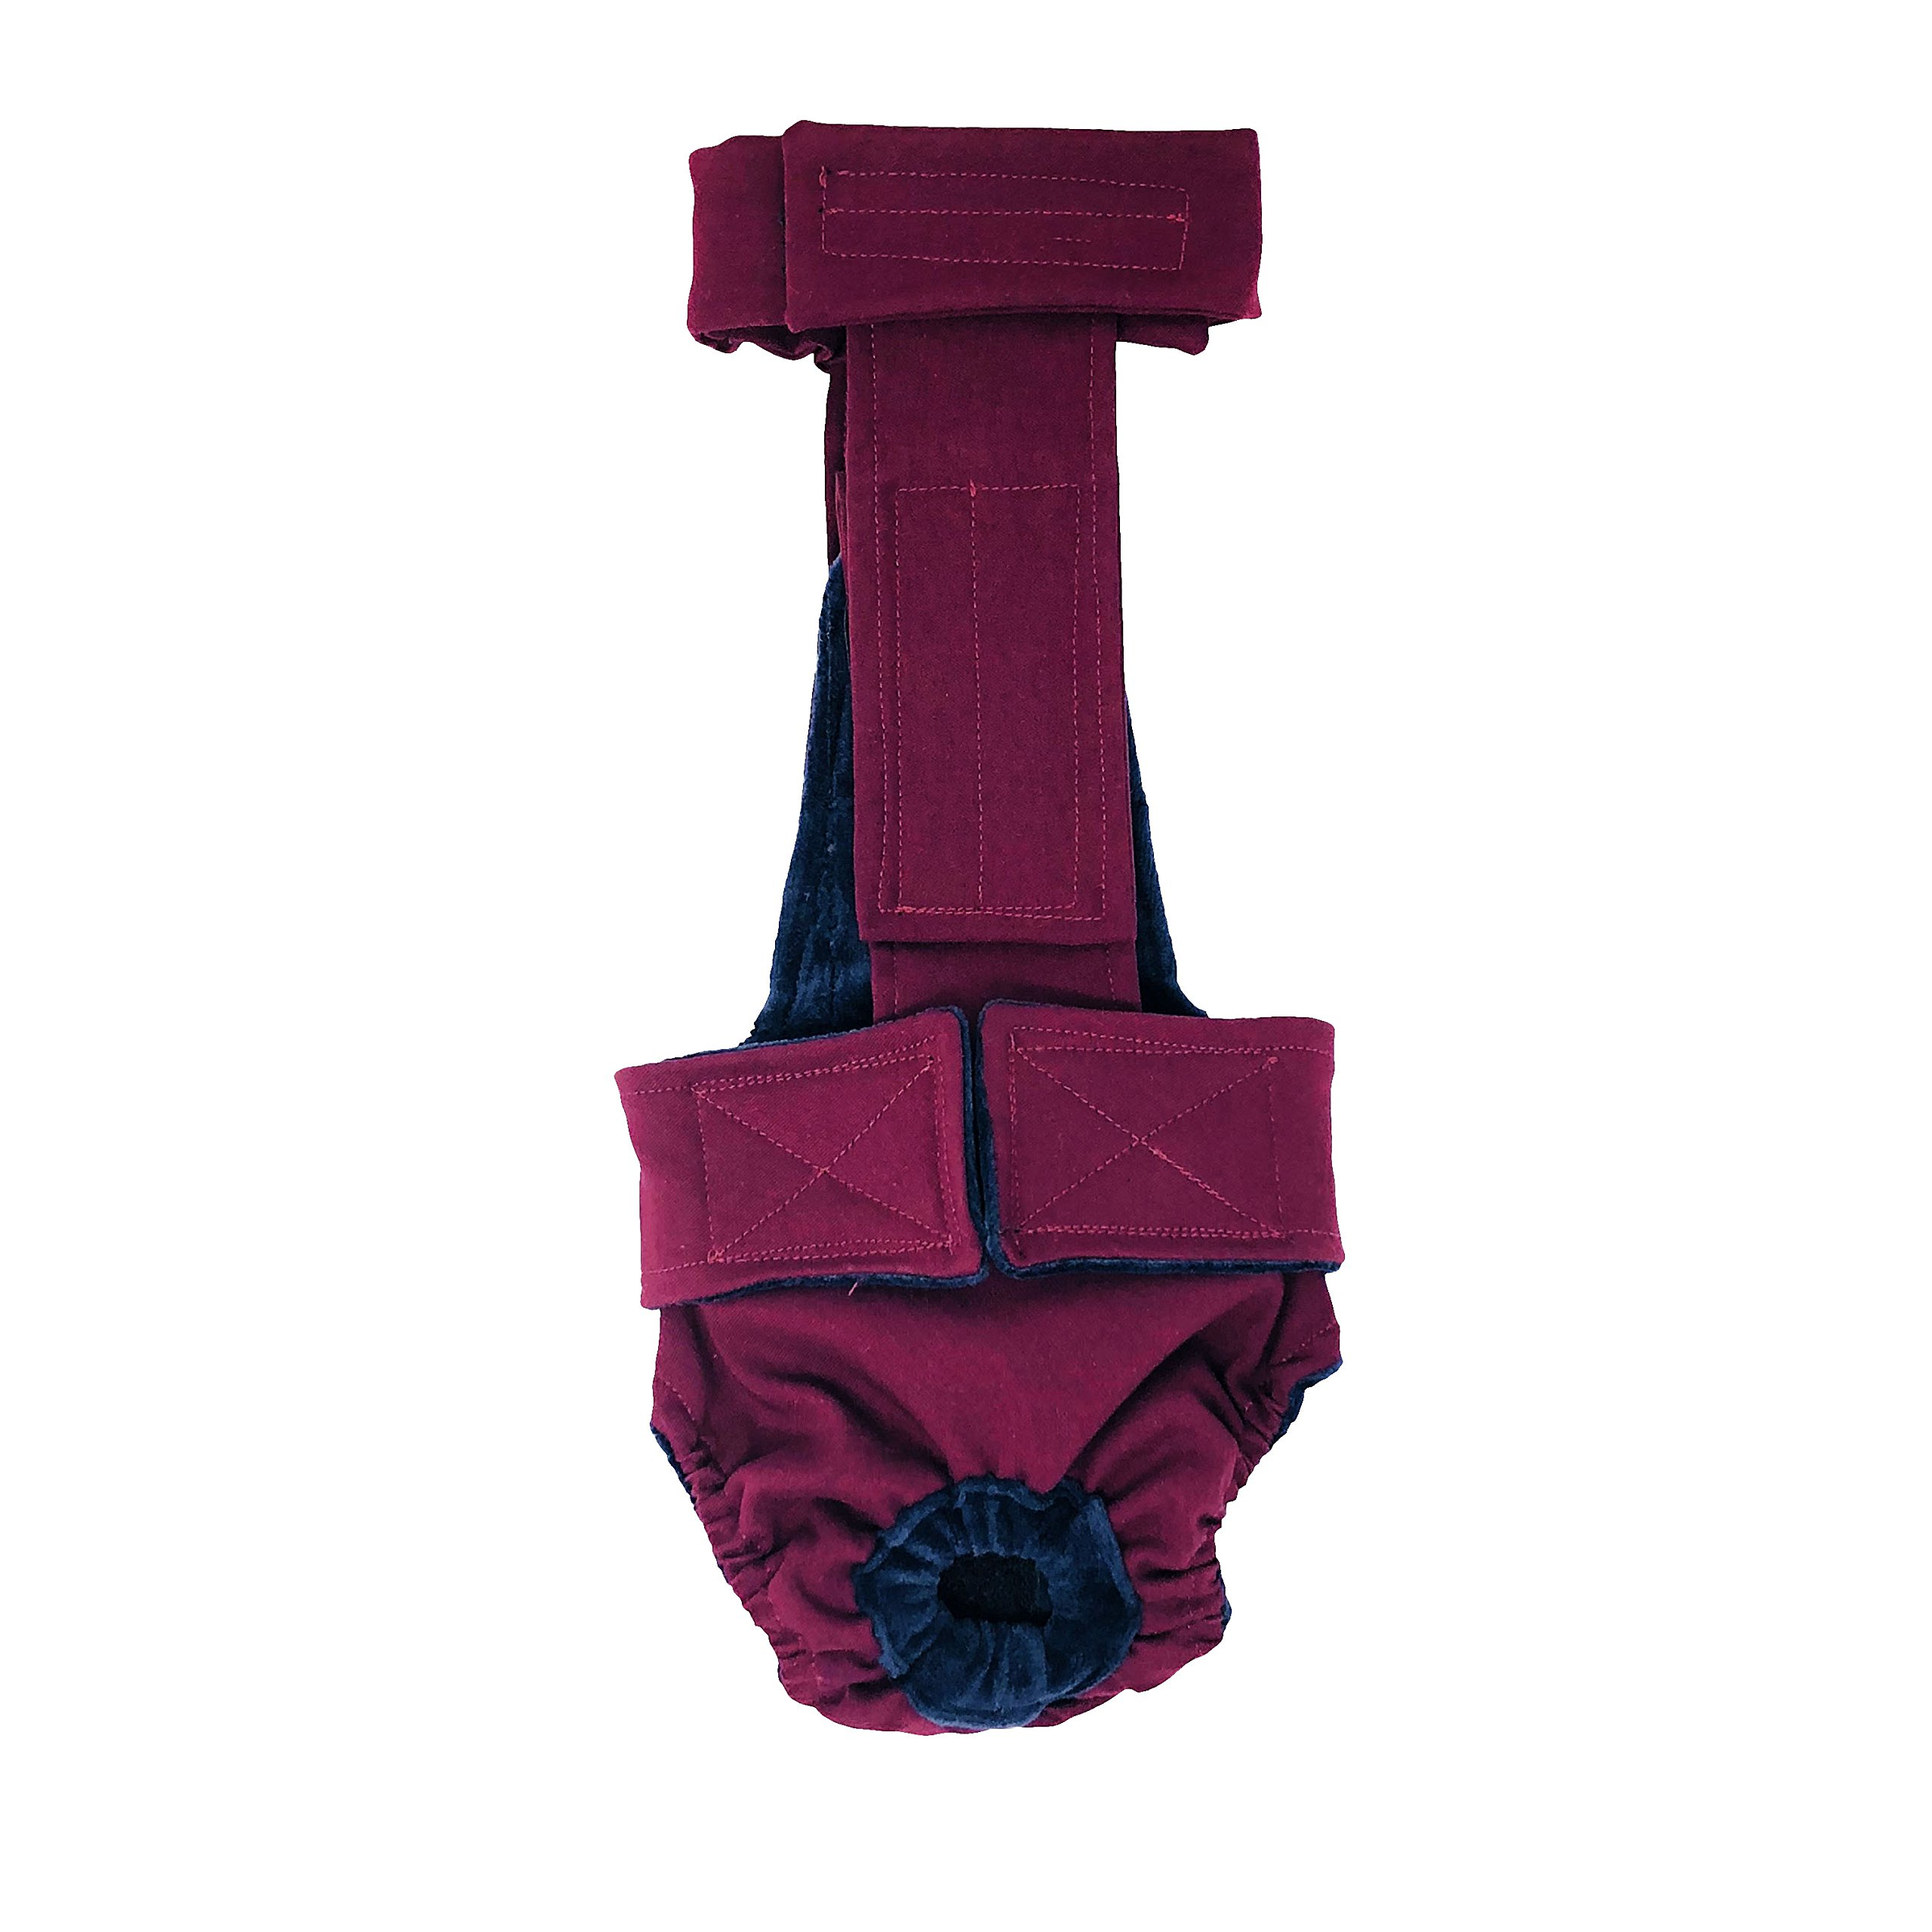 Barkertime Dog Diaper Overall - Made in USA - Merlot Red Escape-Proof Washable Dog Diaper Overall, XXL, Without Tail Hole for Dog Incontinence, Marking, Housetraining and Females in Heat